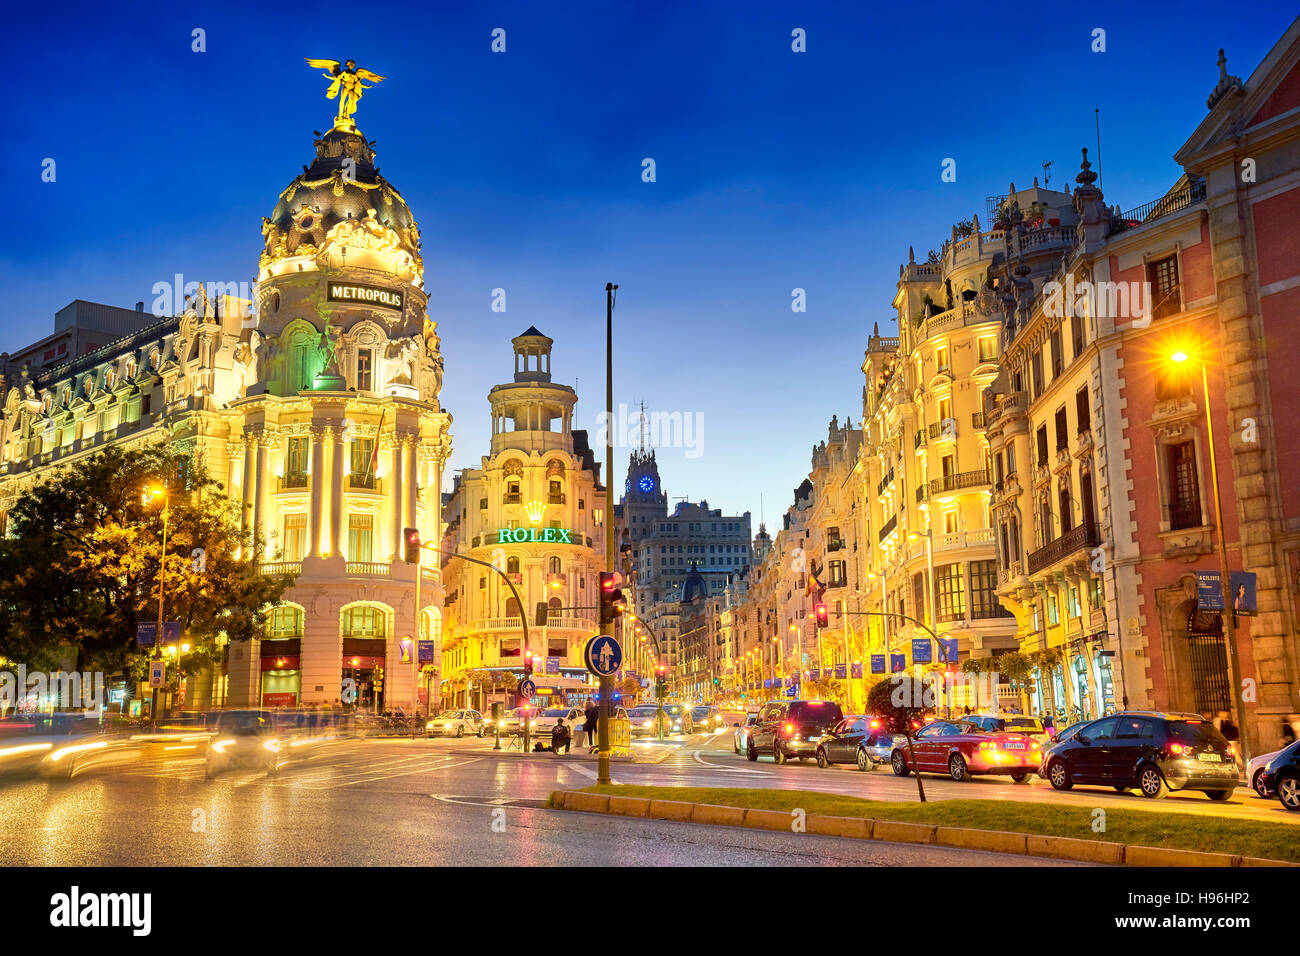 Metropolis building at evening, Gran Via, Madrid, Spain - Stock Image